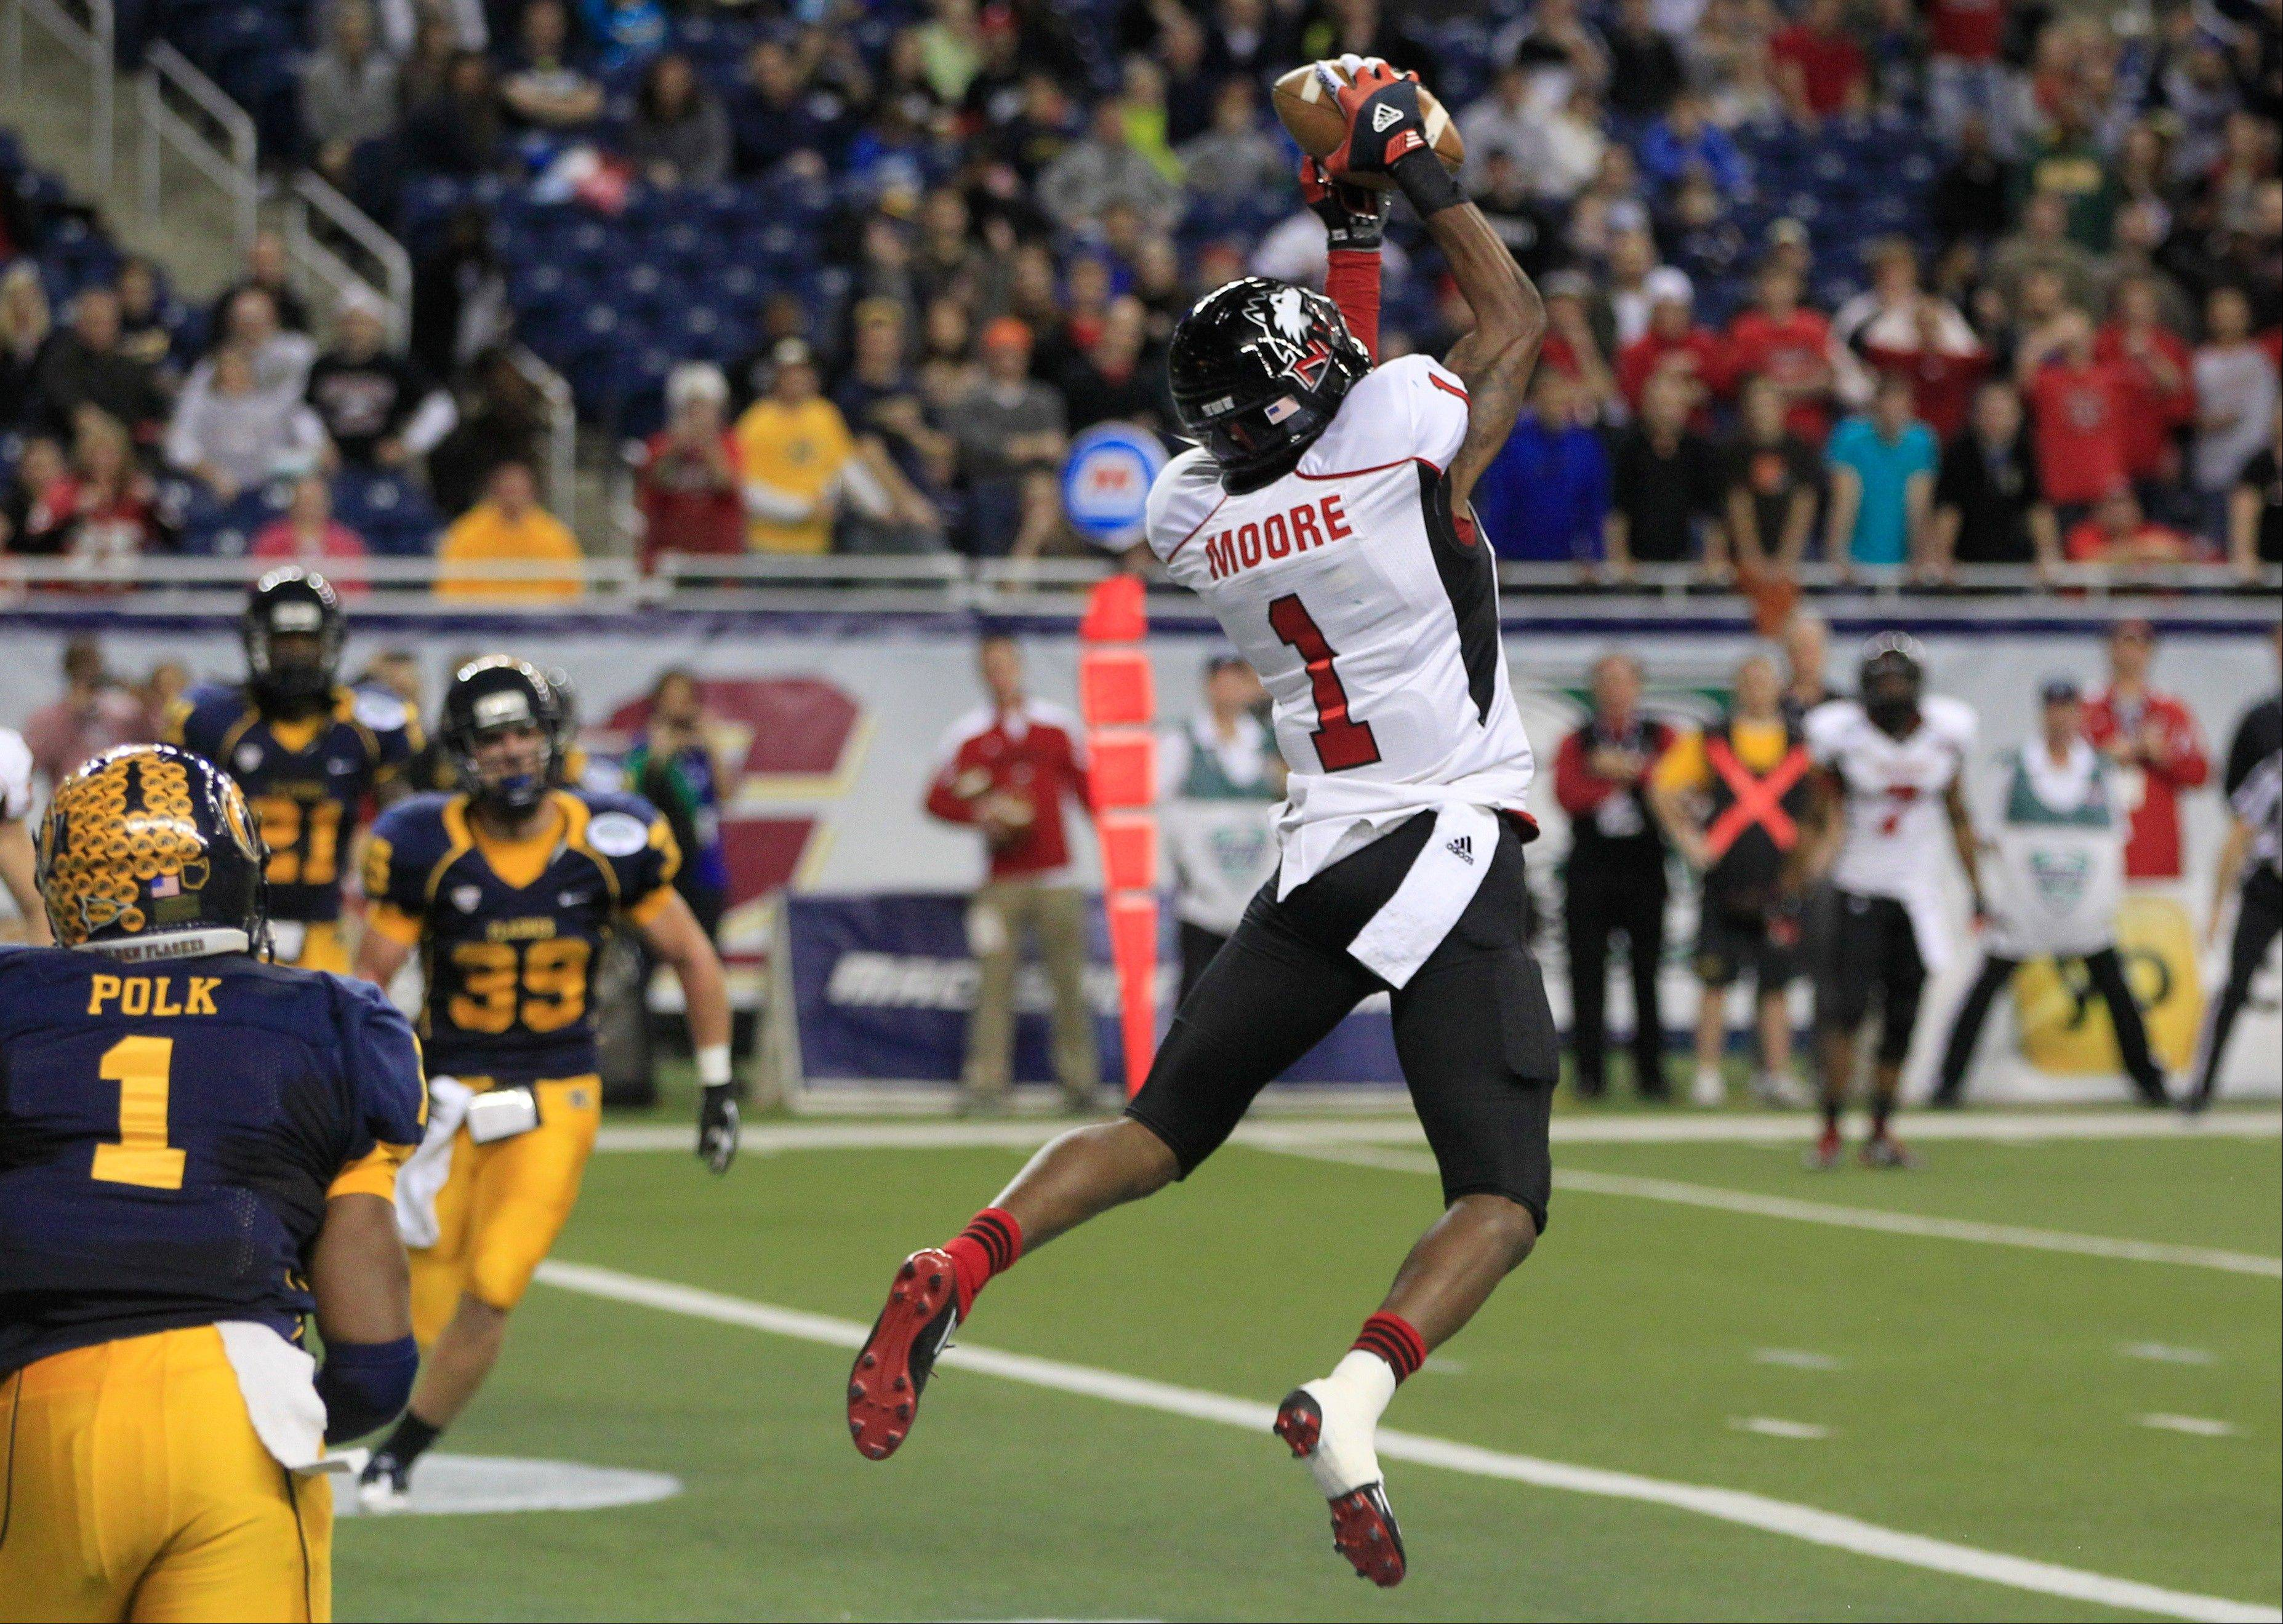 Northern Illinois wide receiver Martel Moore (1) catches a pass for a touchdown Friday during the second quarter.